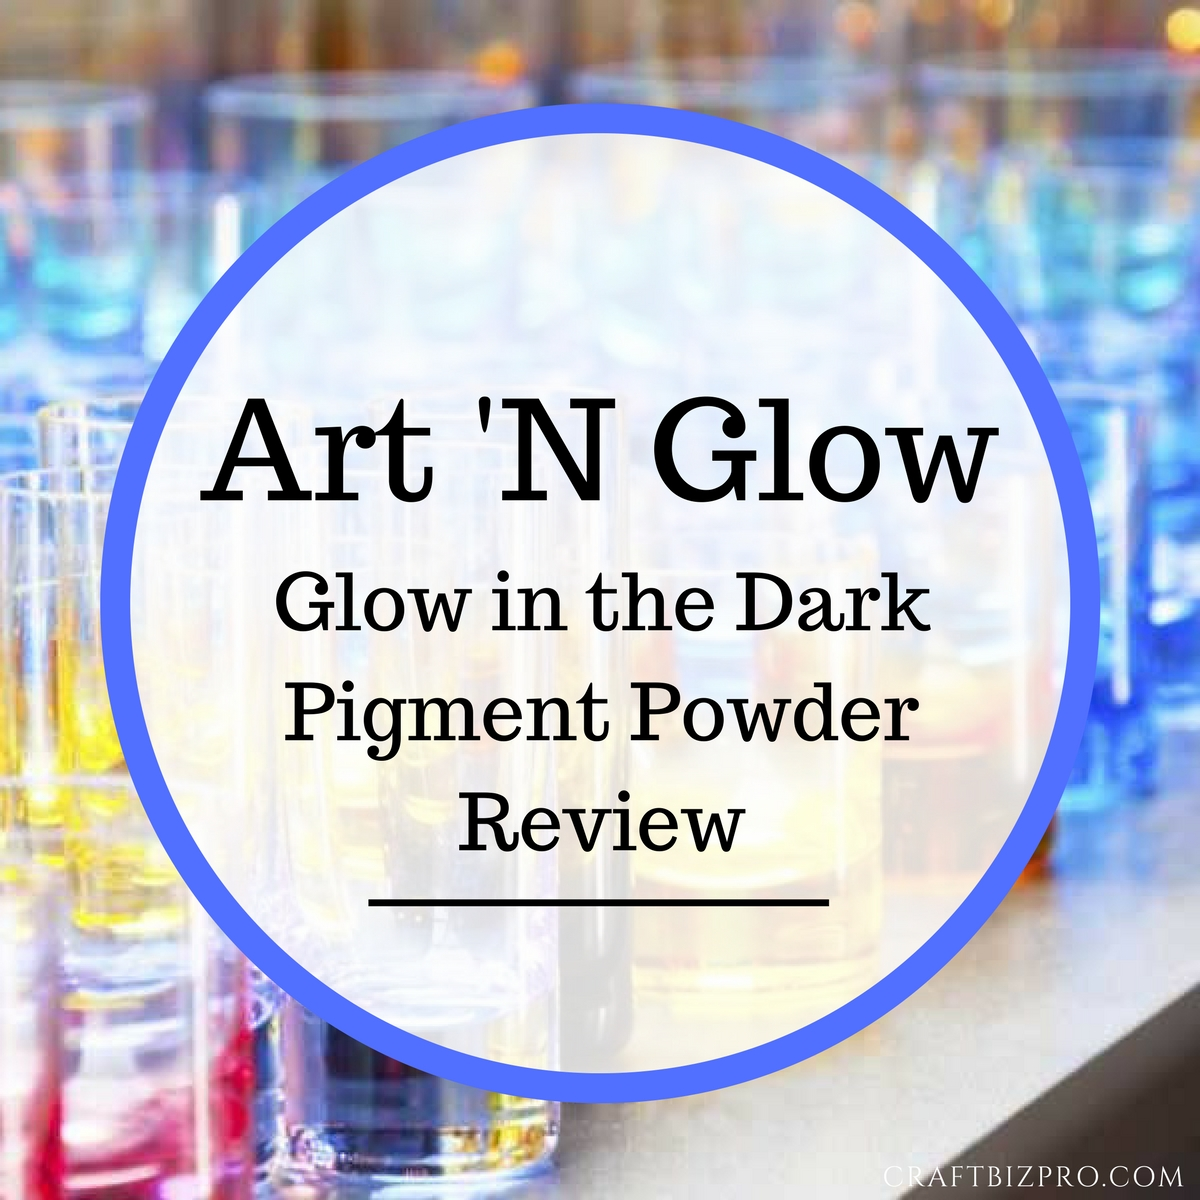 Art 'N Glow Glow in the Dark Pigment Powder Review